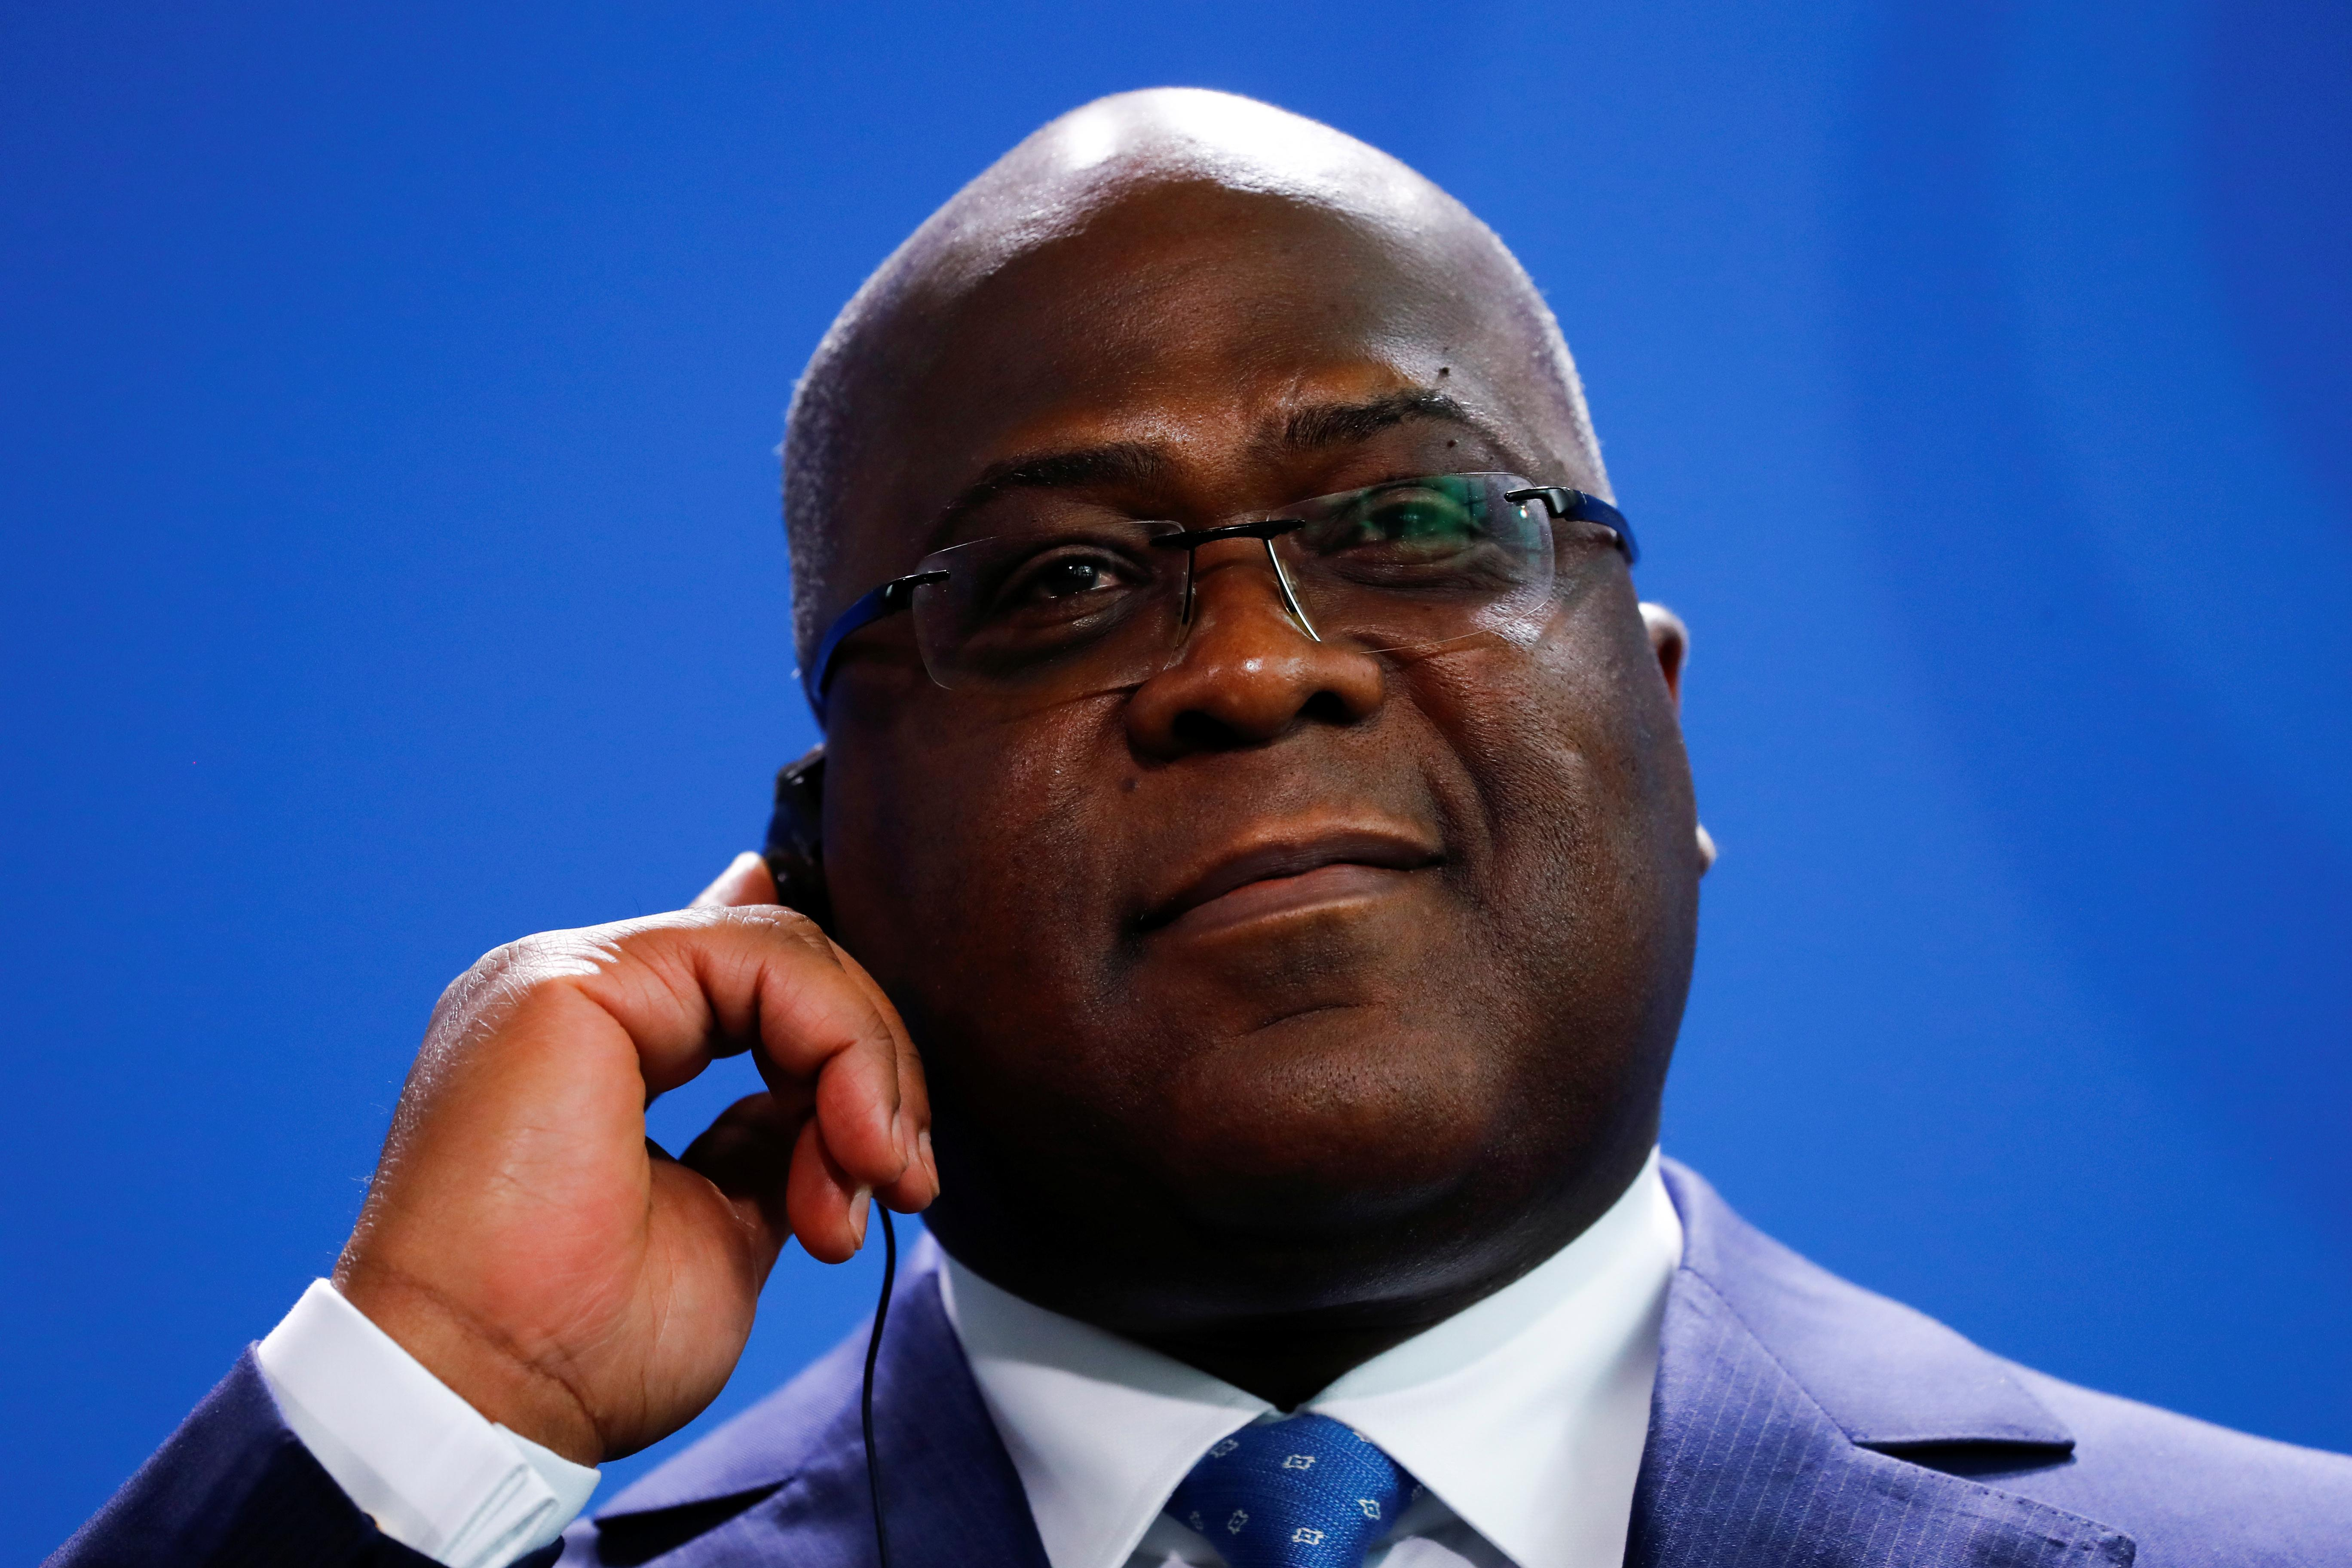 Congo president says Ebola outbreak should be over this year